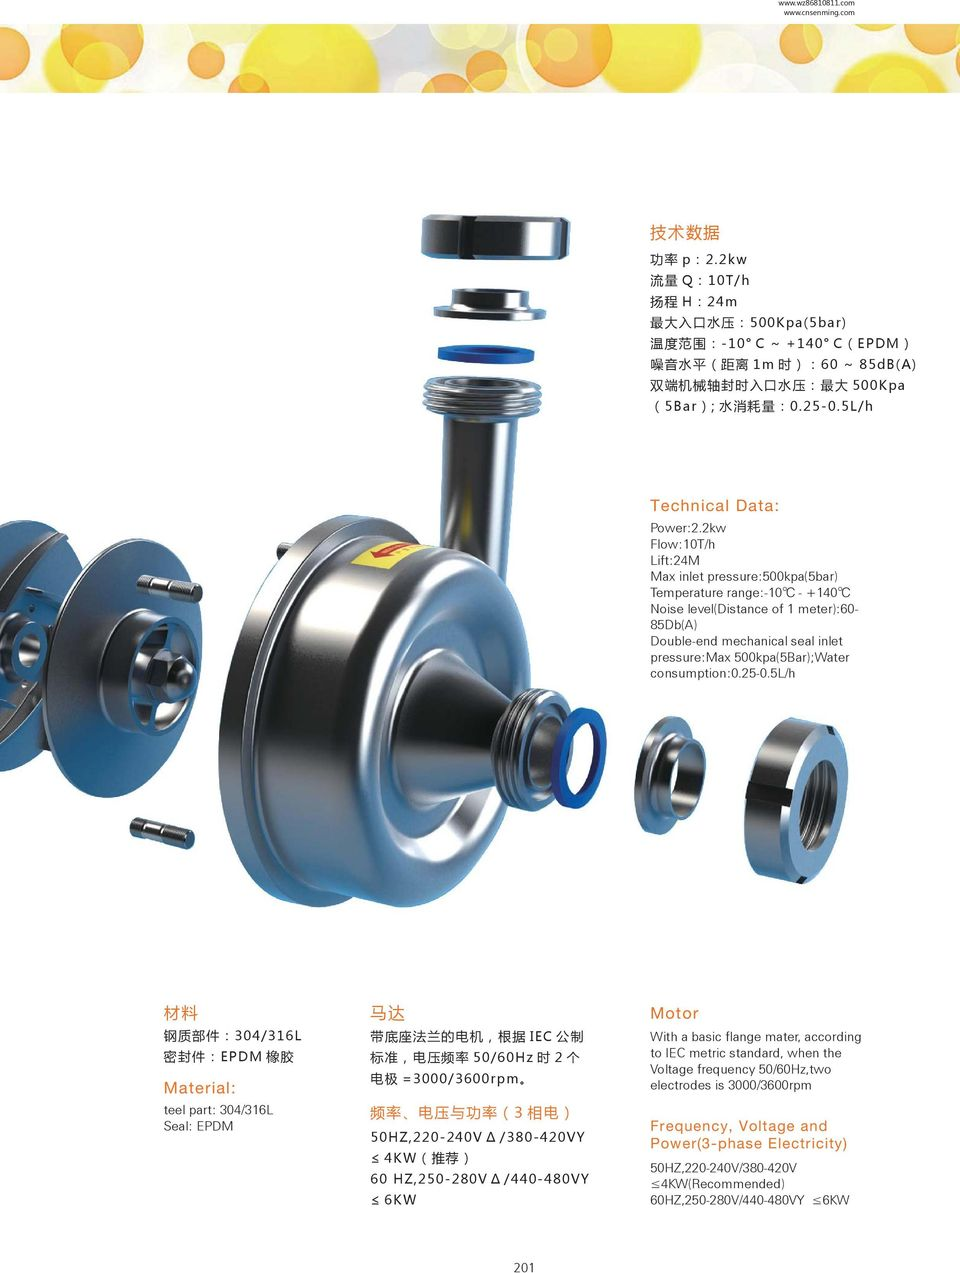 2kw Flow:10T/h Lift:M Max inlet pressure:500kpa(5bar) Temperature range:-10 - +1 Noise level(distance of 1 meter):60-85db(a) Double-end mechanical seal inlet pressure:max 500kpa(5Bar);Water